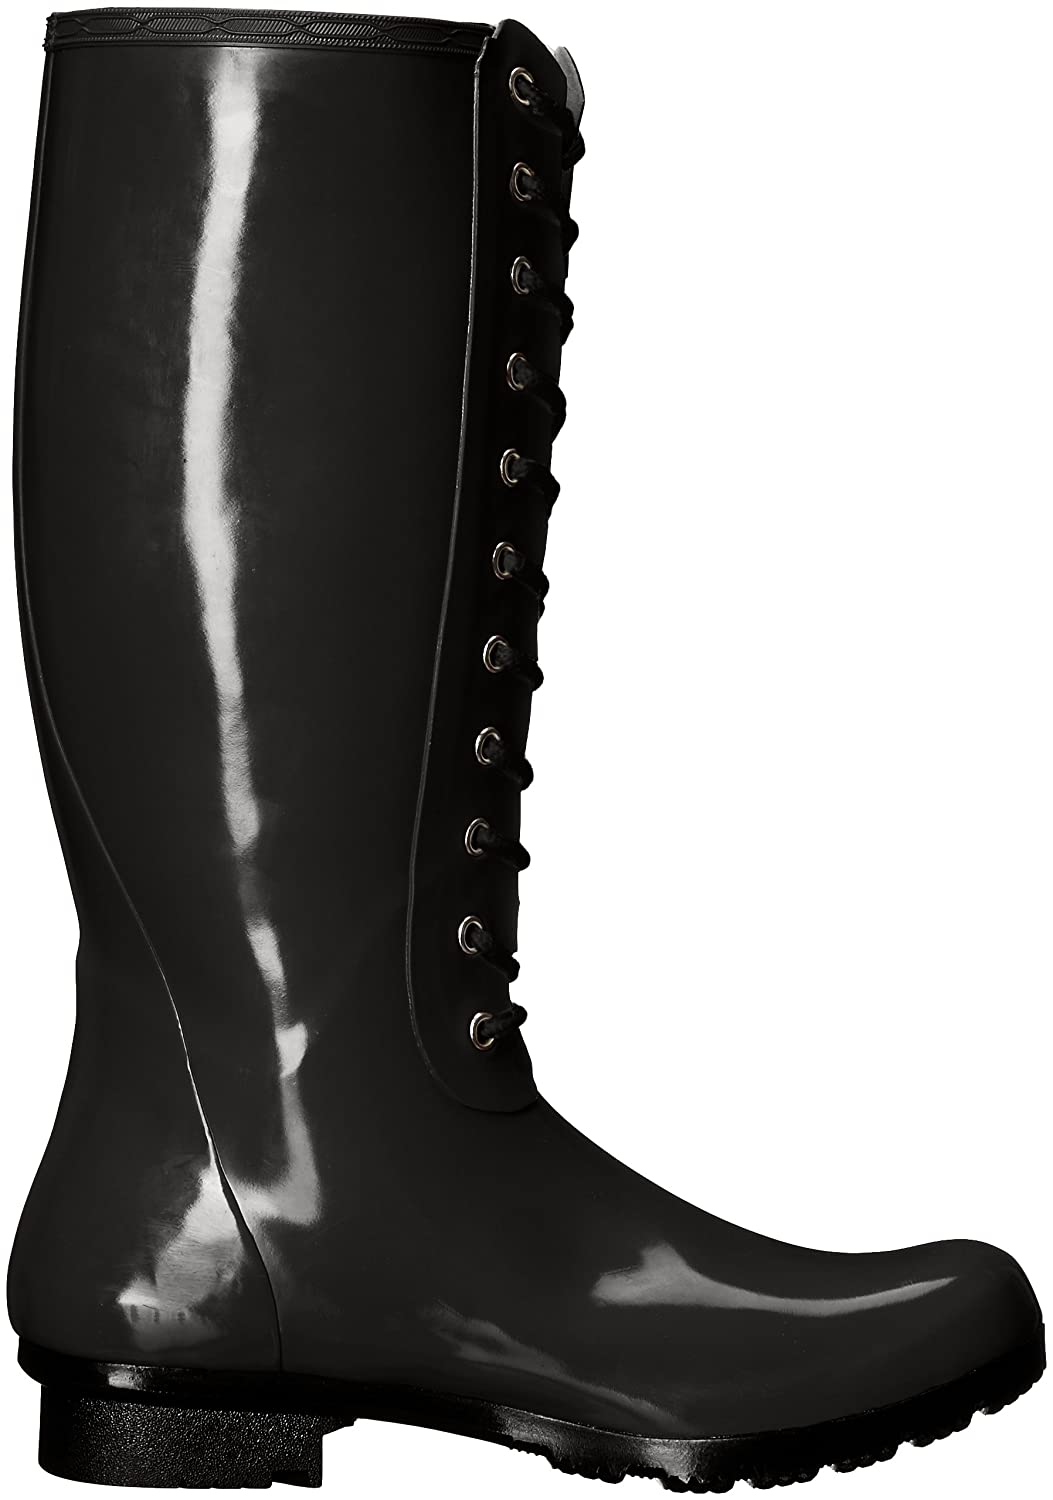 Roma Boots Women's OPINCA Lace-up Rain Boots B01L2WO48I 8 B(M) US|Black